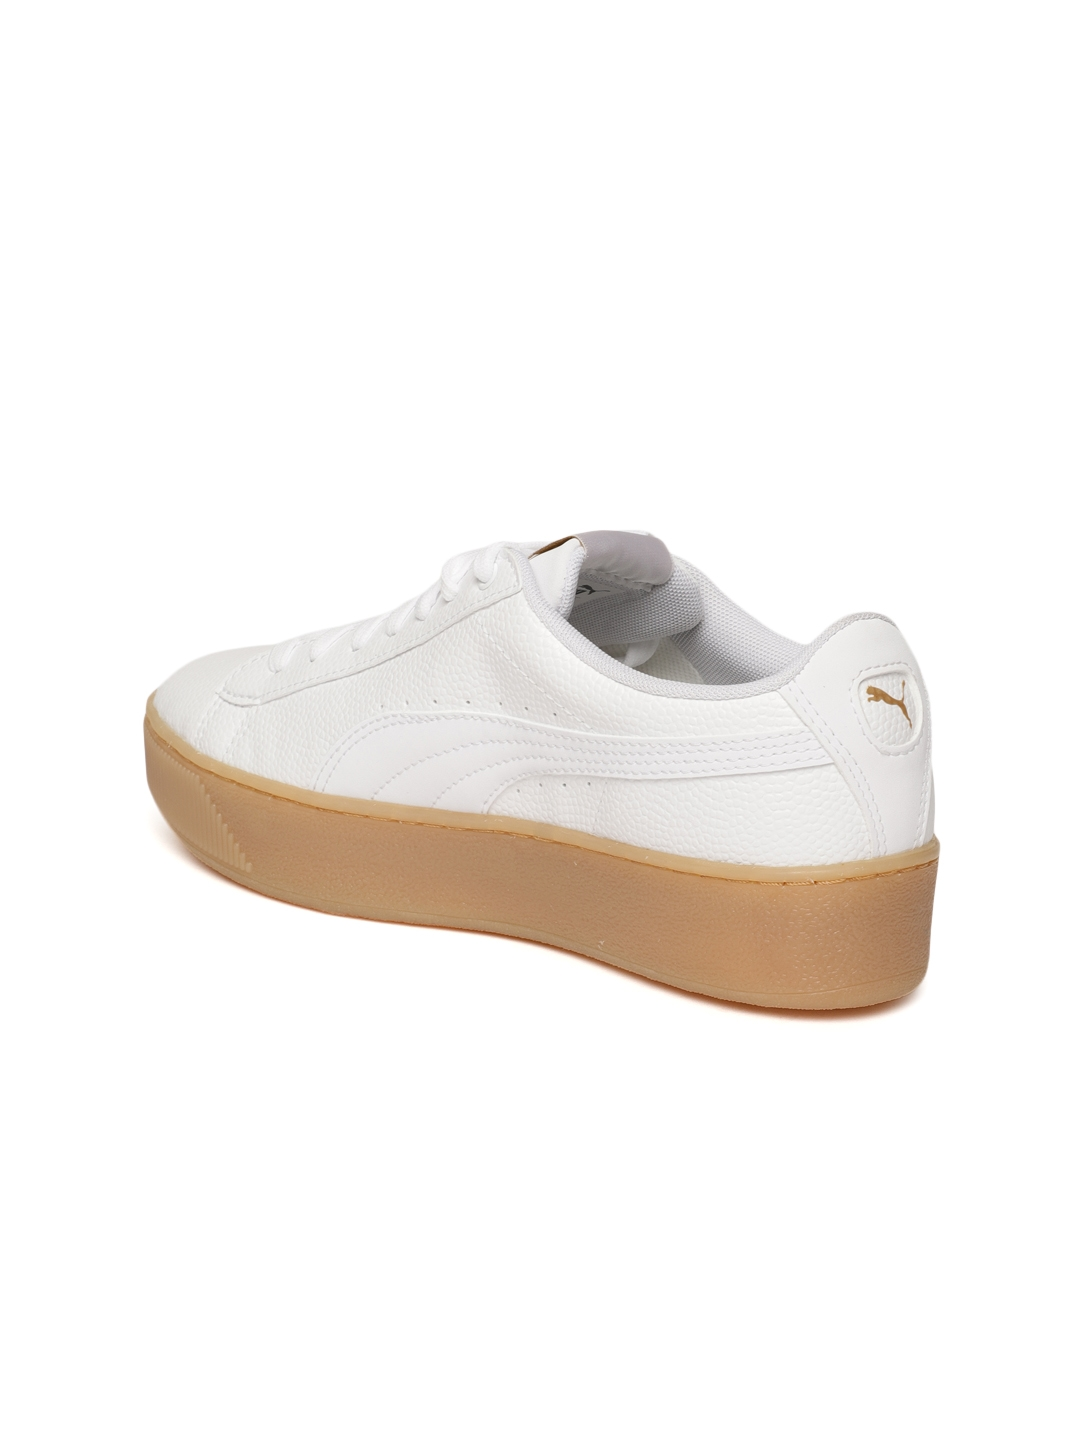 2e2430cf3a4102 Buy Puma Women White Vikky Platform VT Sneakers - Casual Shoes for ...